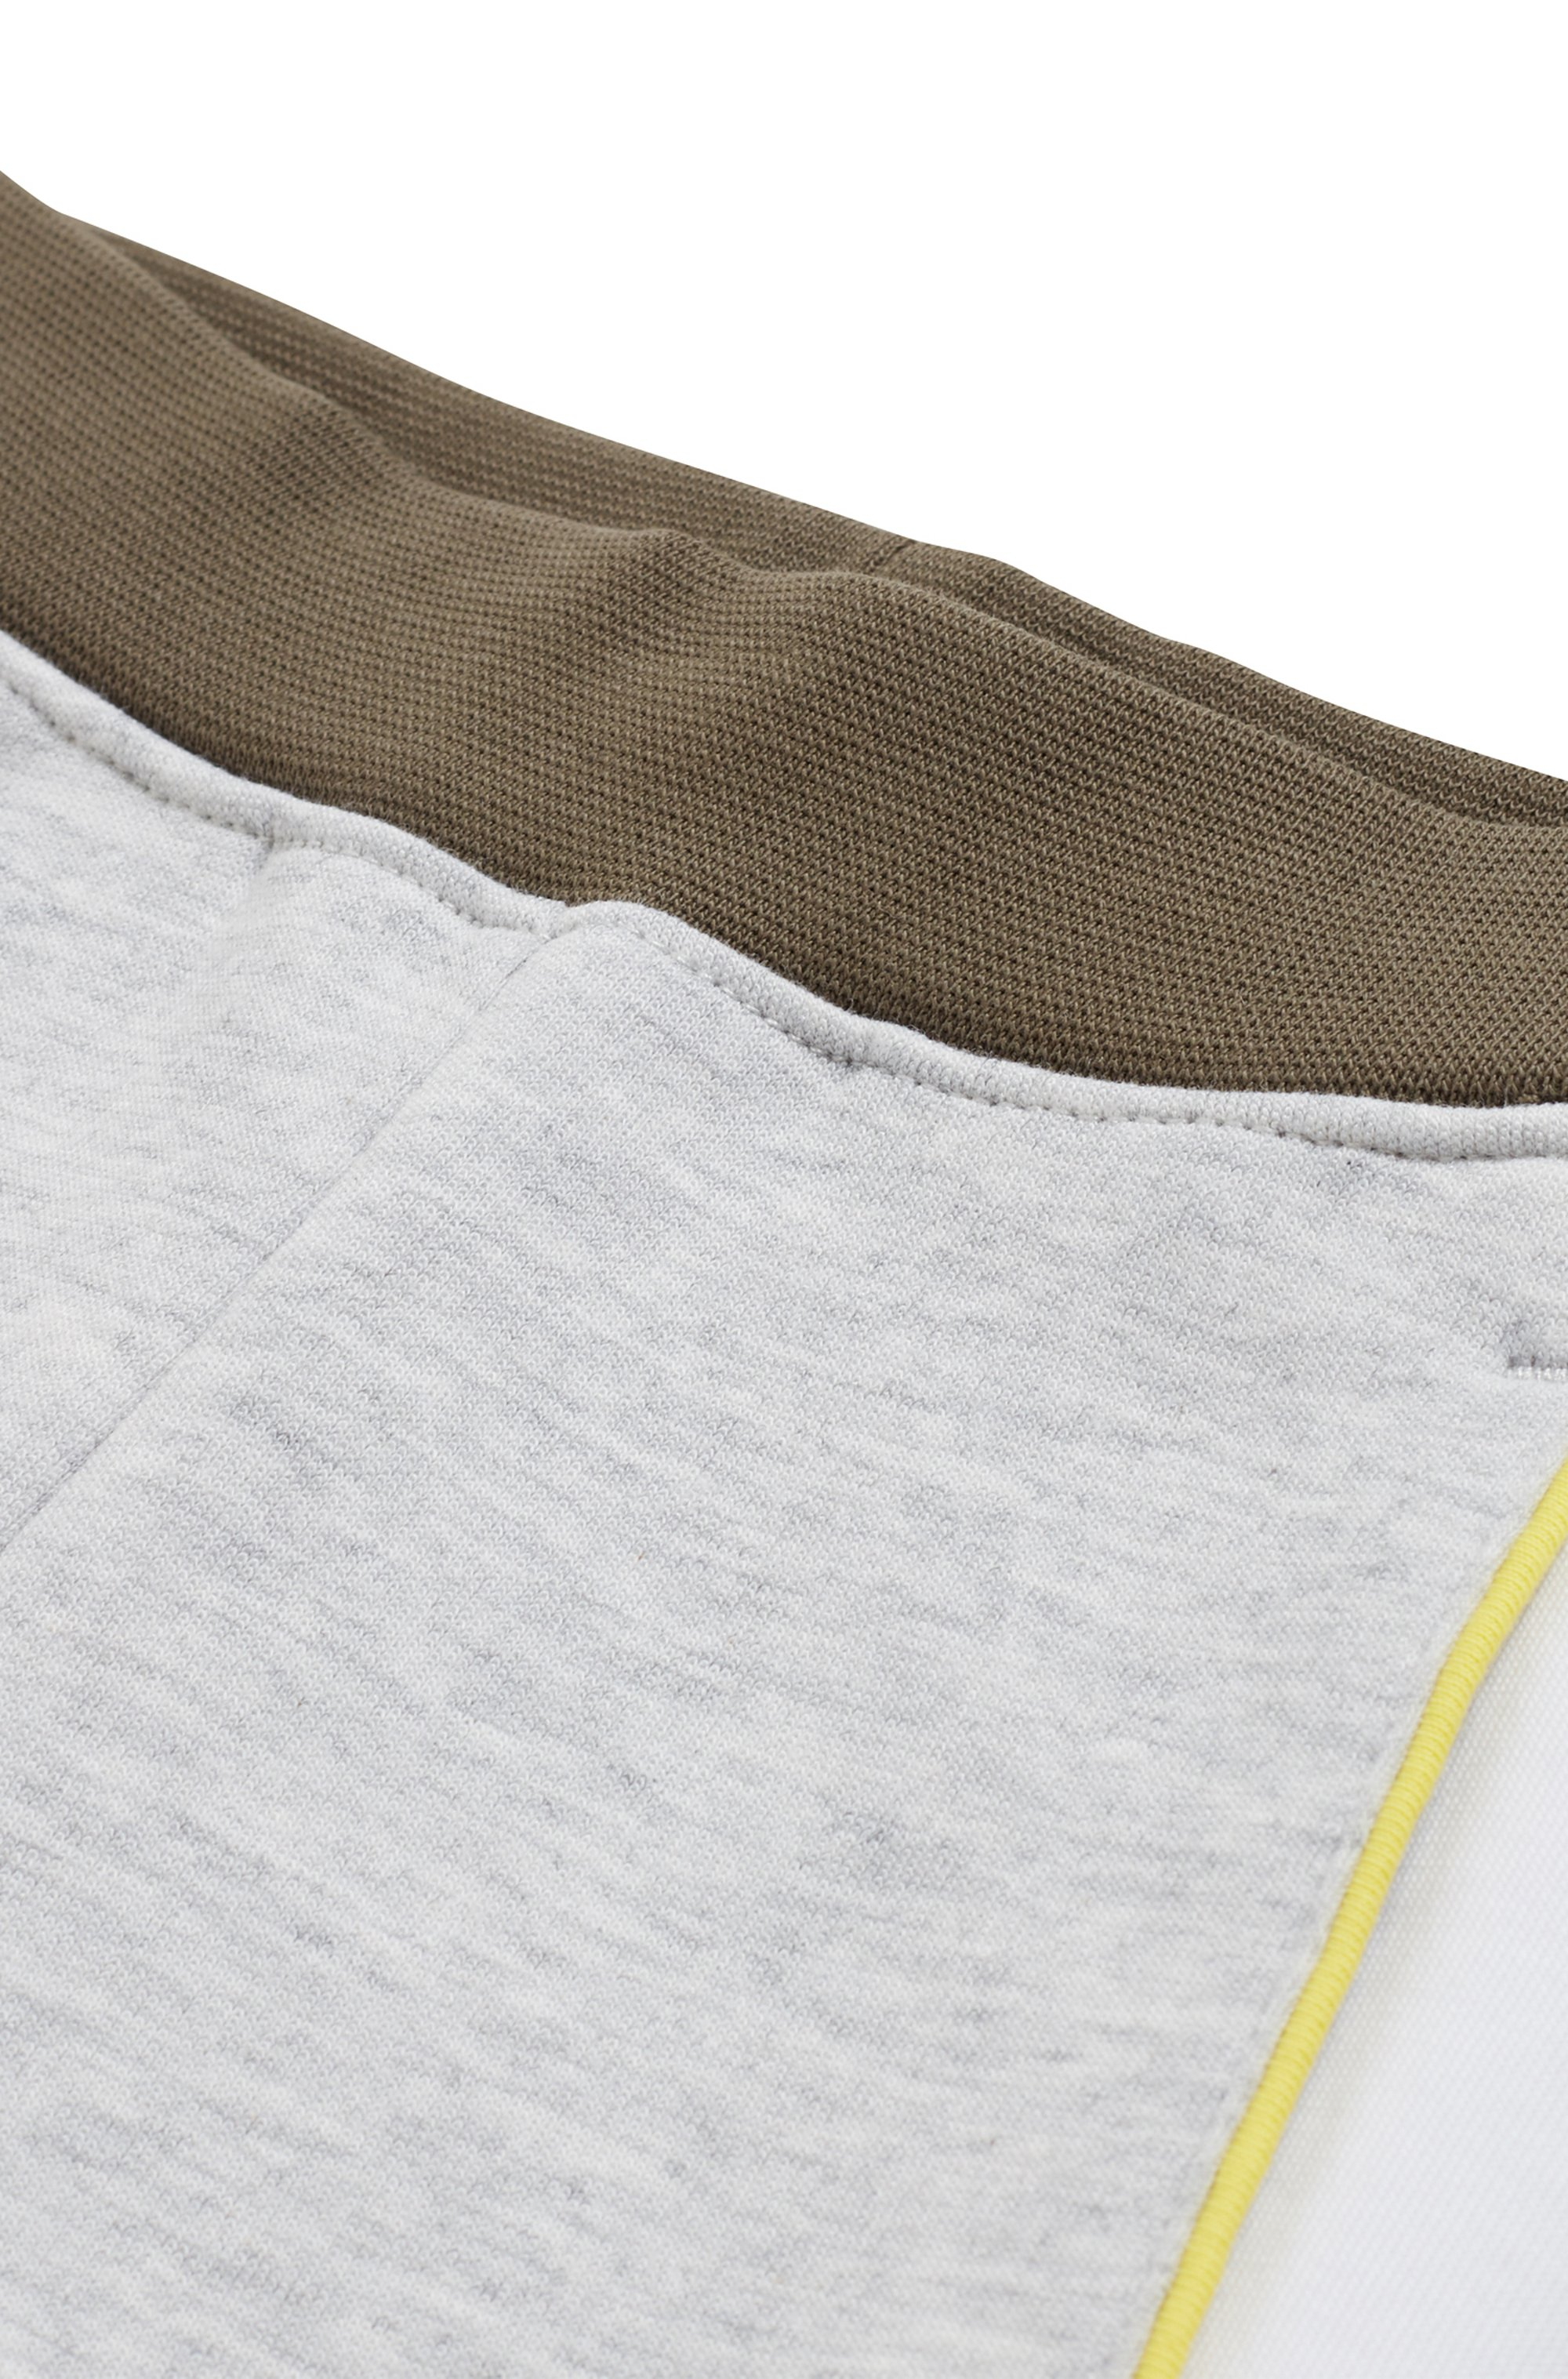 Kids' cotton-blend shorts with logo-tape detailing